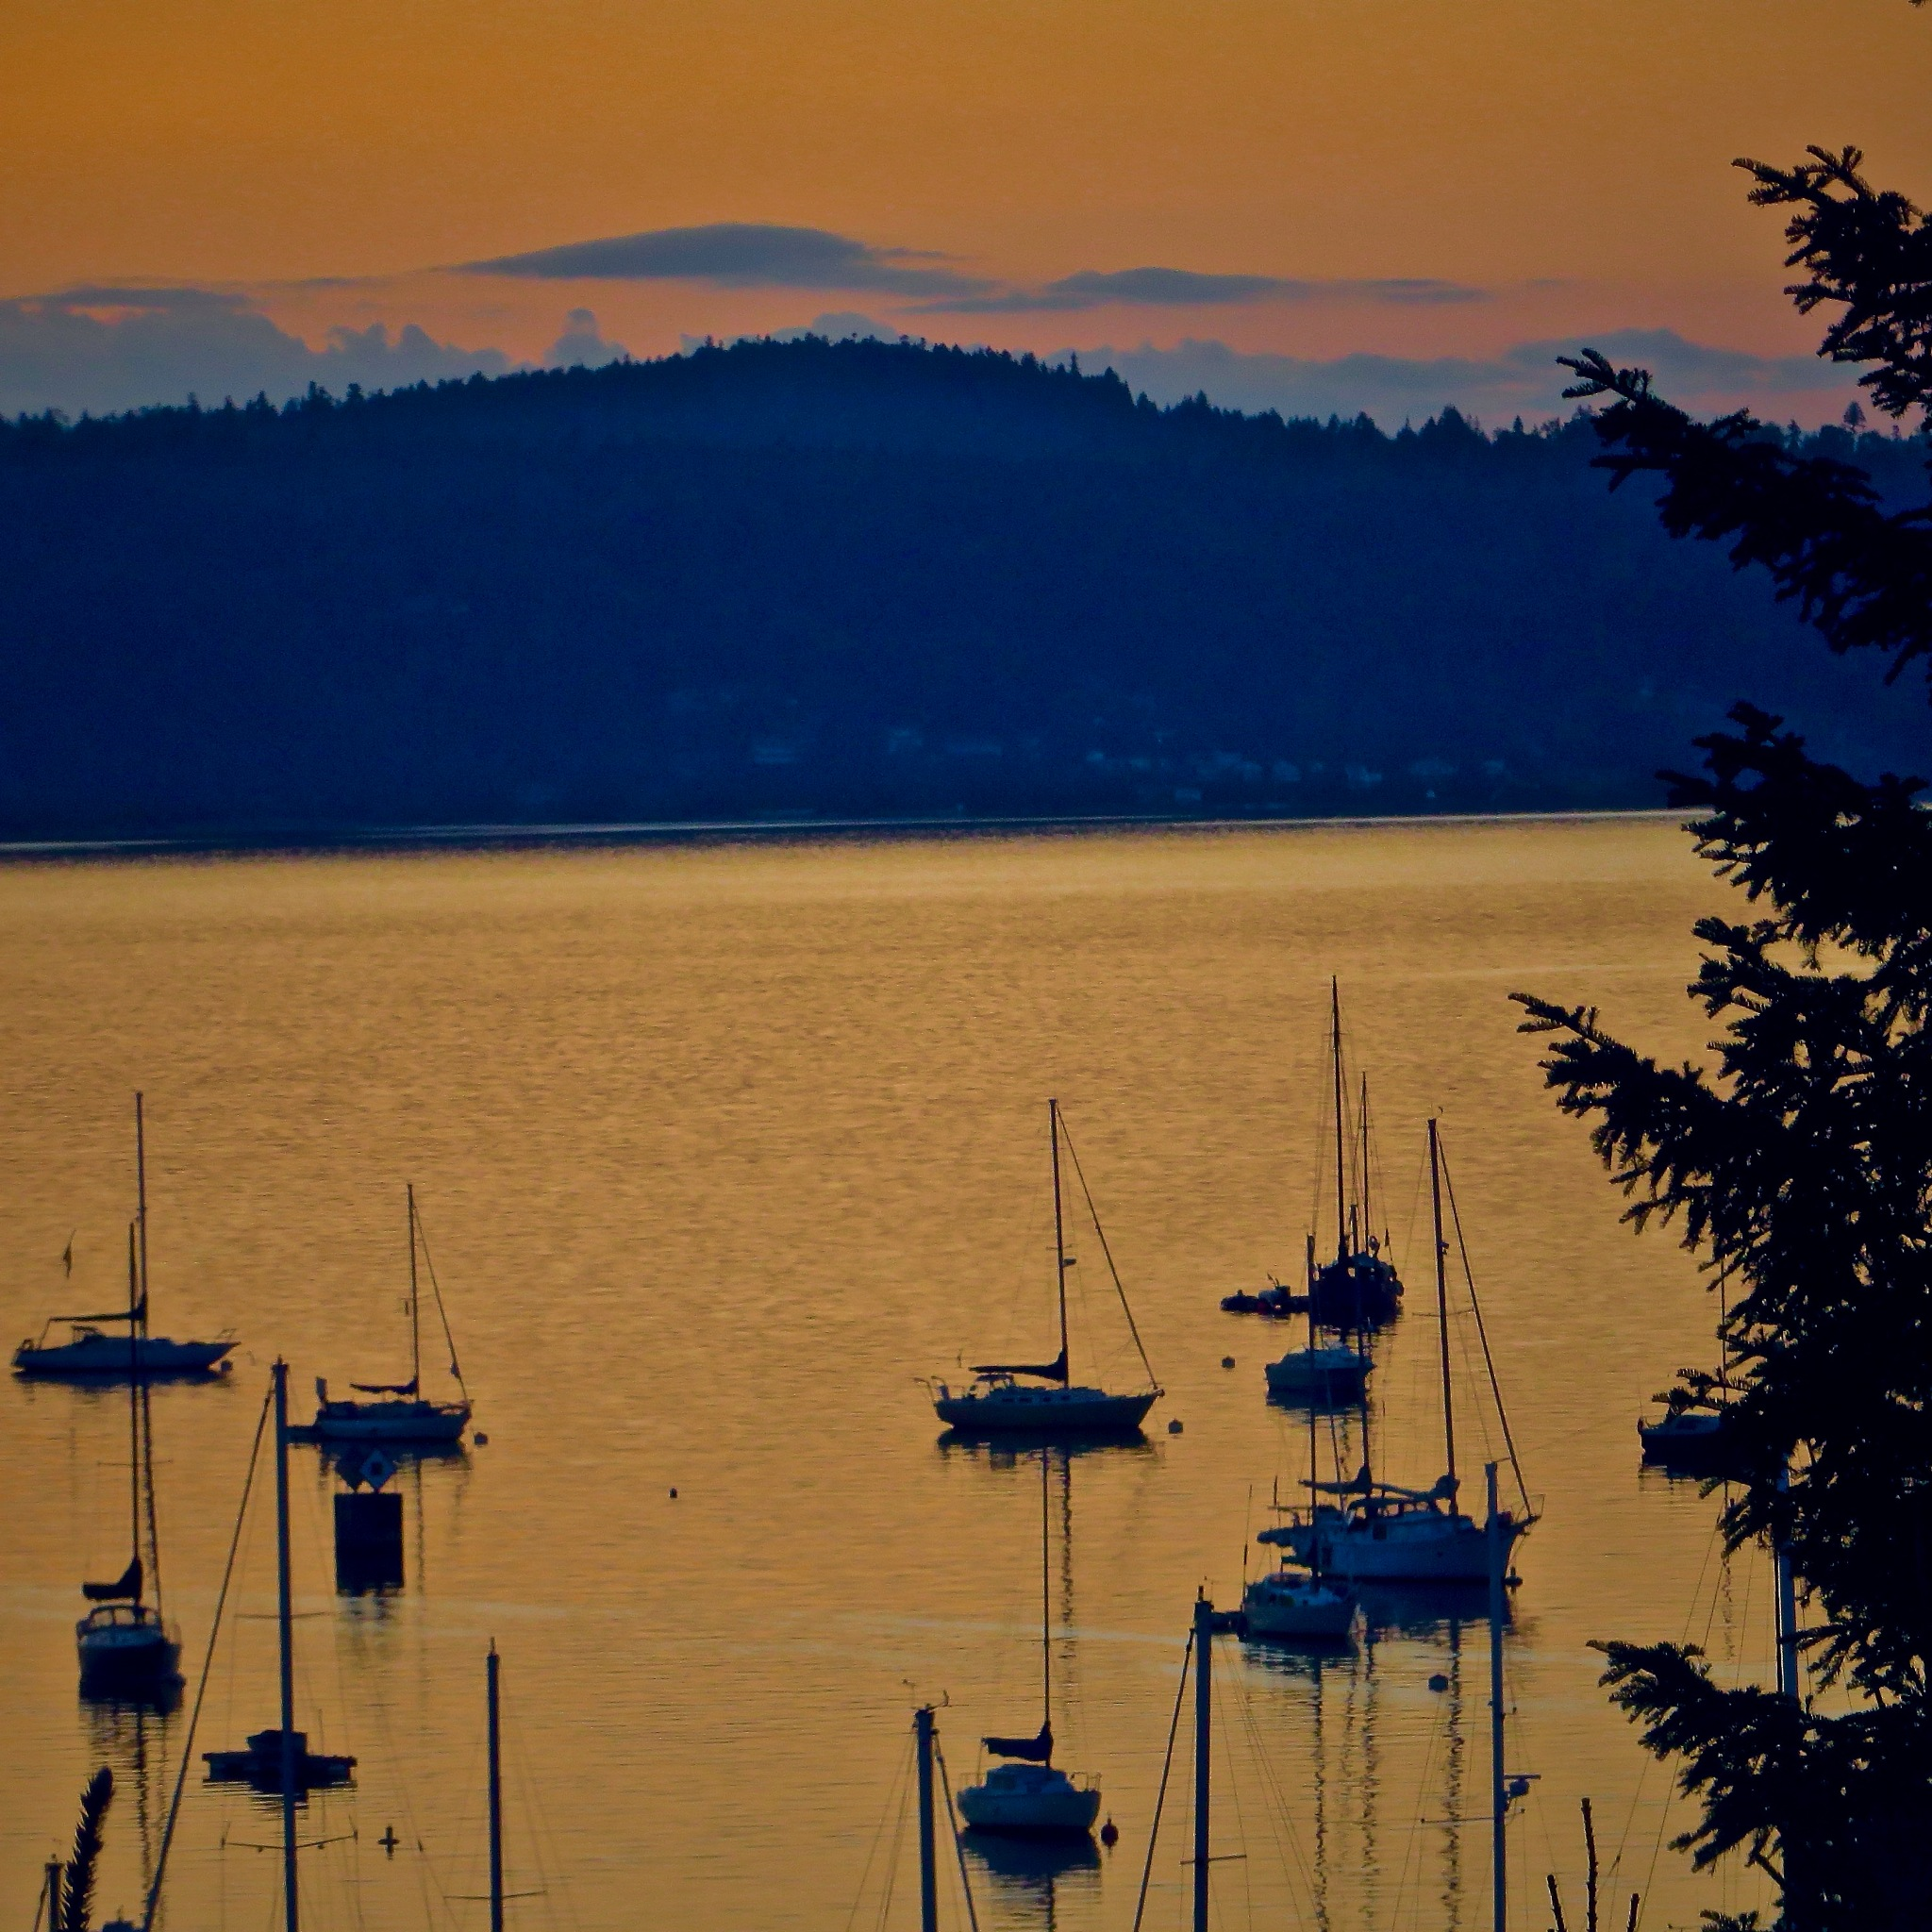 as the boats float over the bay at the end of another day by David Devion